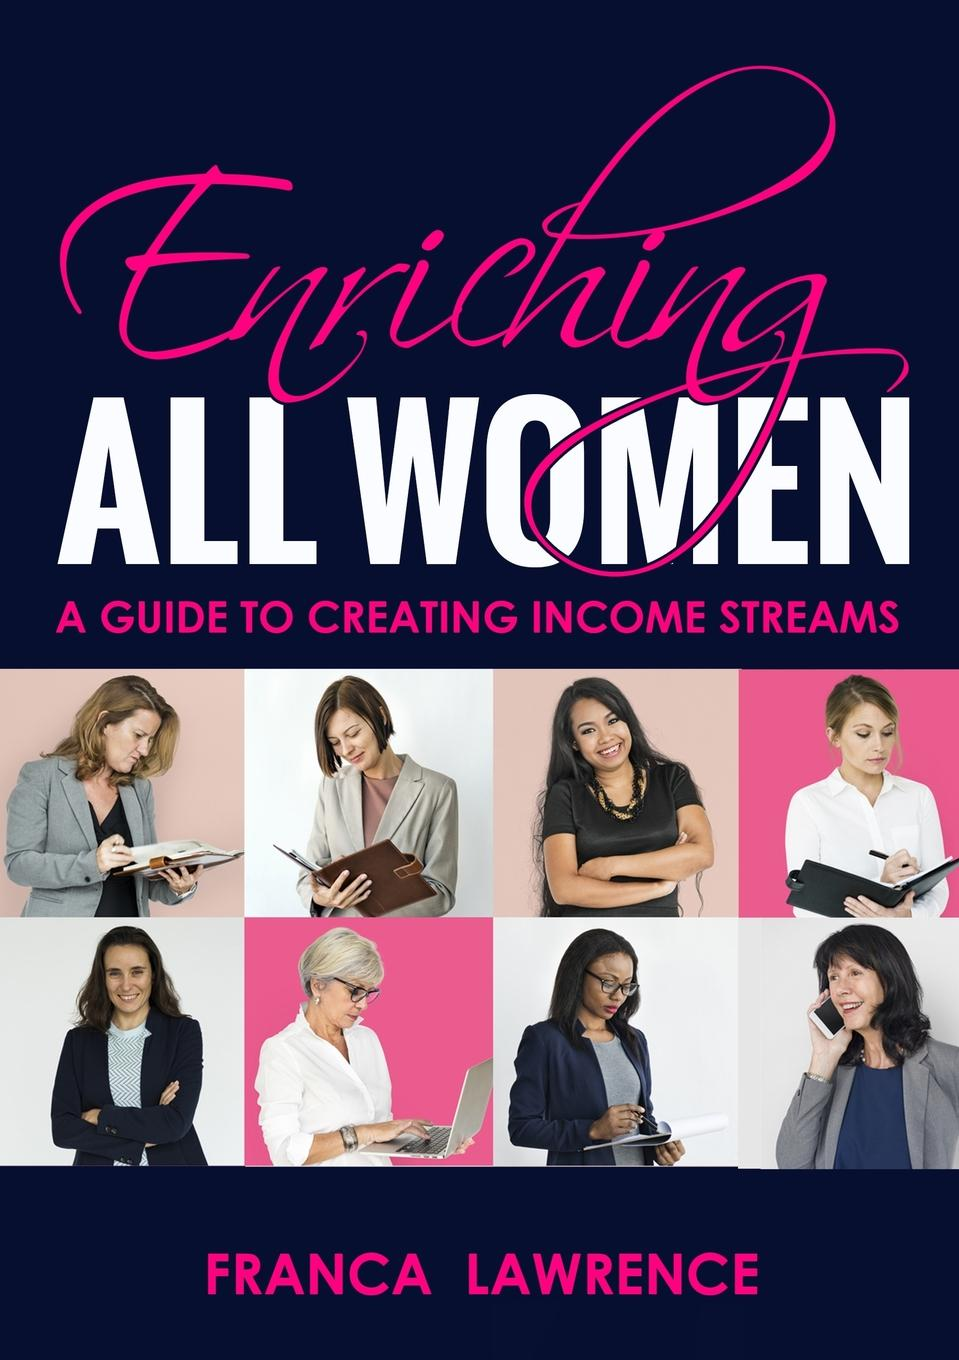 Franca Lawrence Enriching All Women. A Guide To Creating Income Streams robert g allen multiple streams of income how to generate a lifetime of unlimited wealth